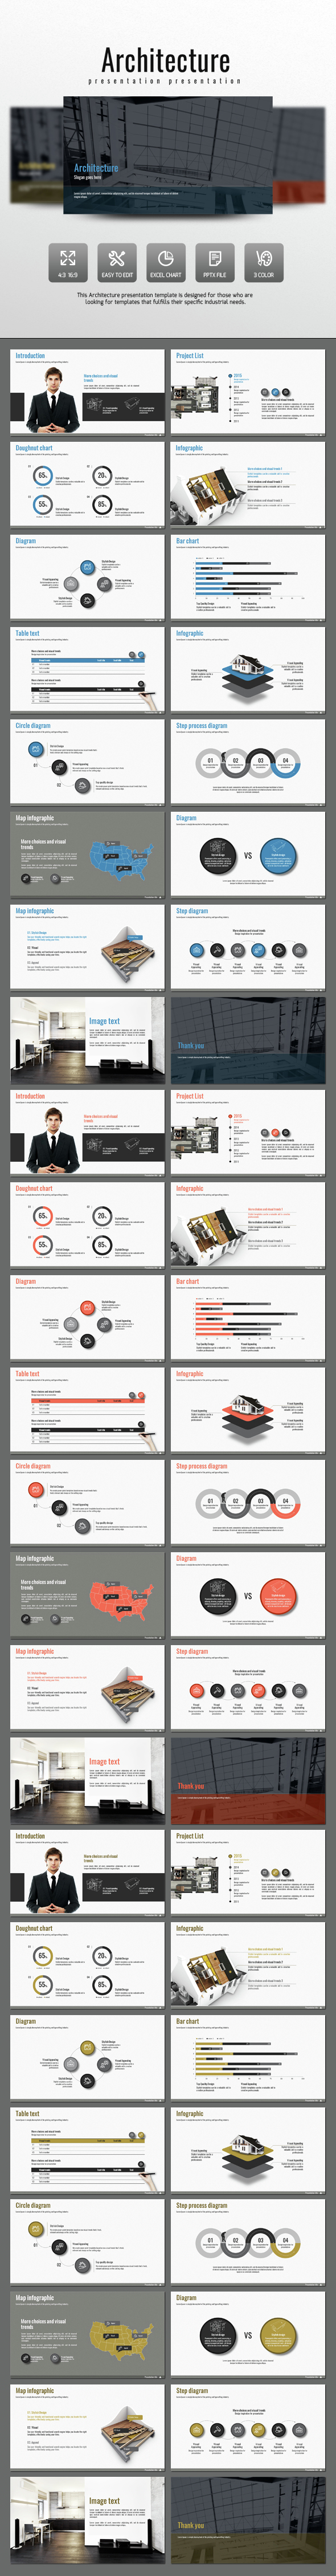 Architecture - PowerPoint Templates Presentation Templates